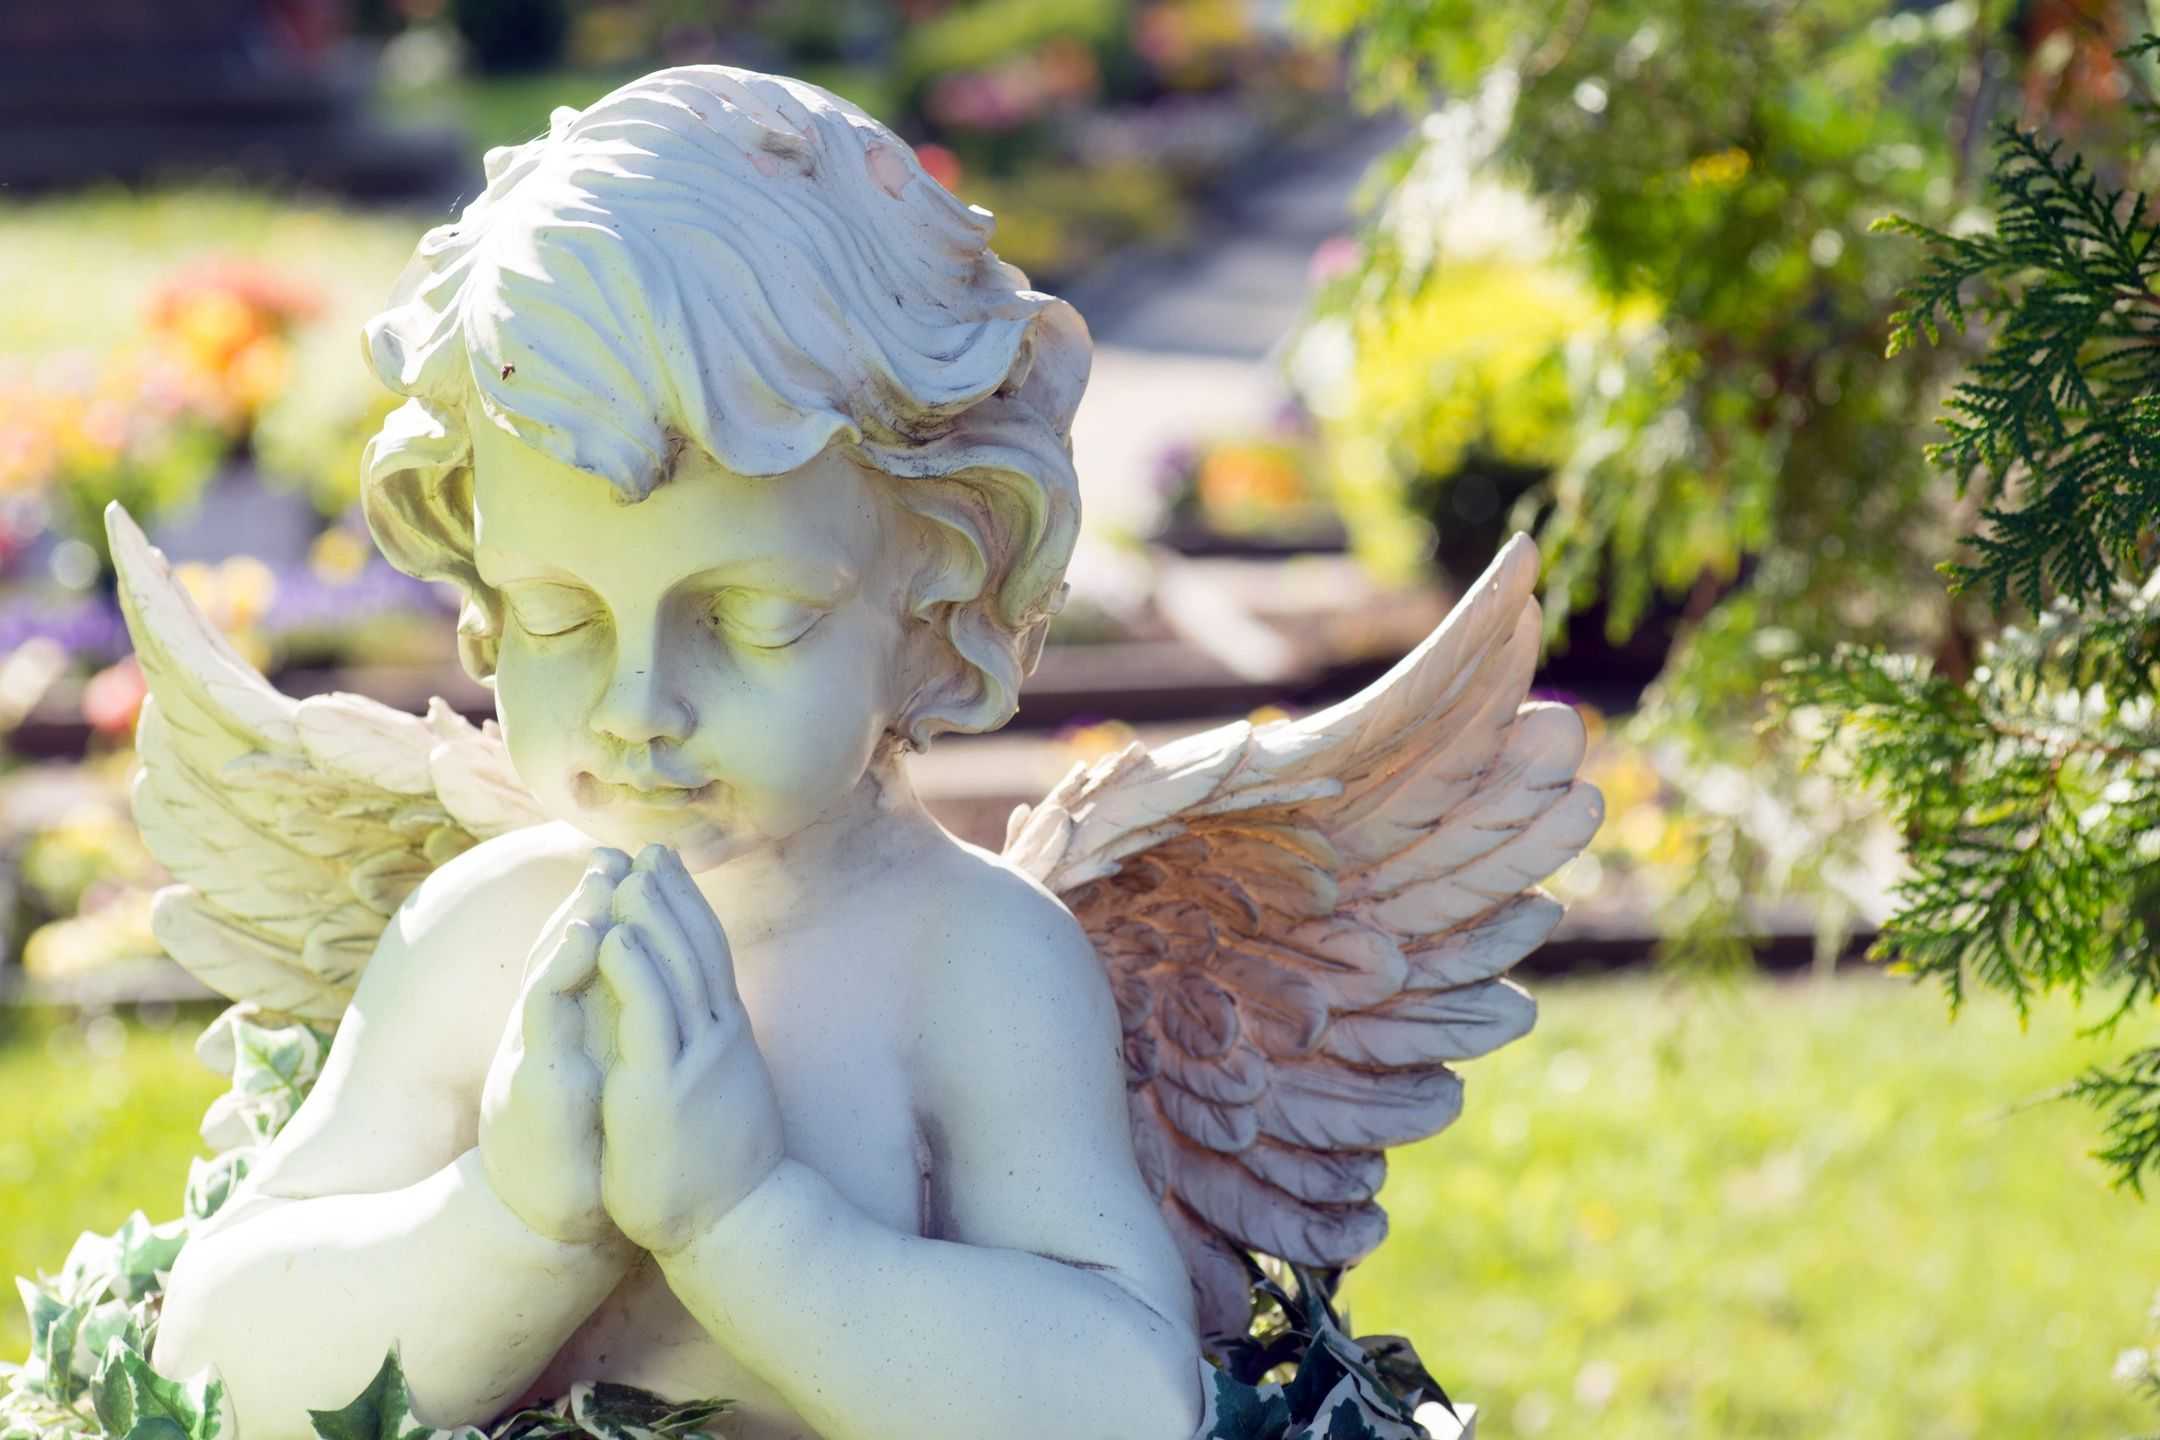 County holds mass burial today in Traver